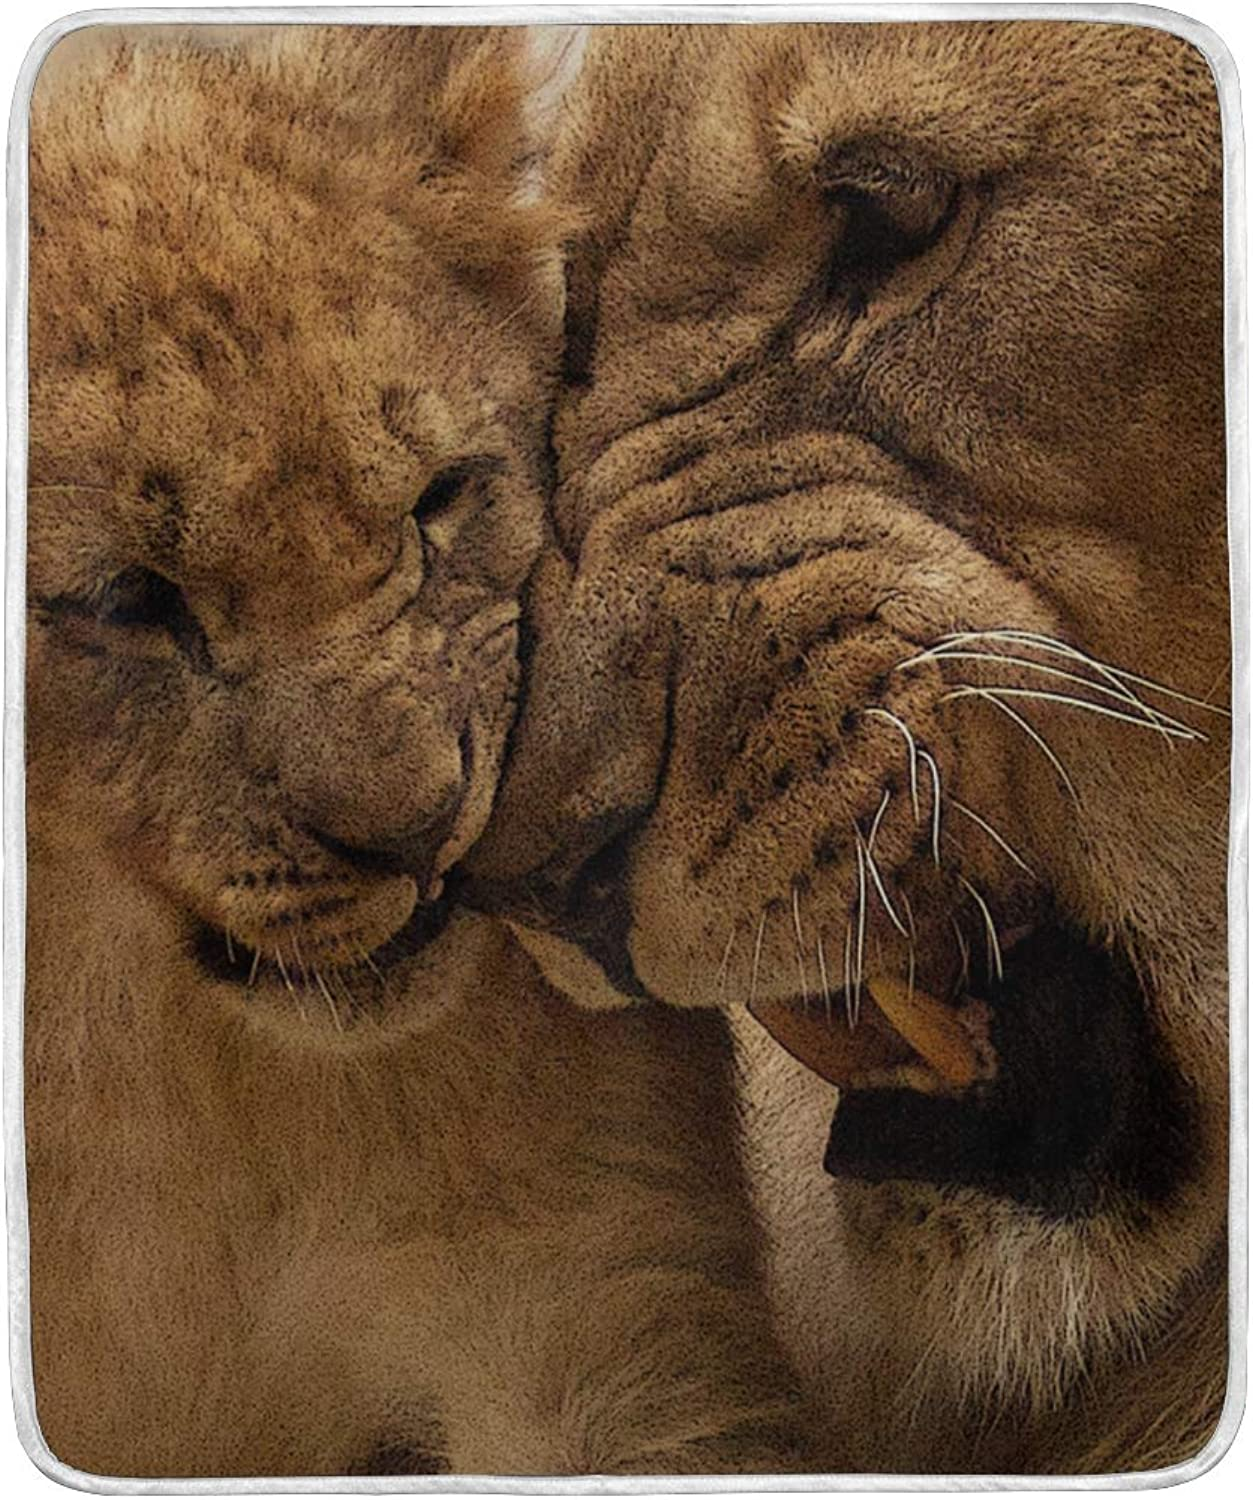 WIHVE Throw Blanket Lion Lightweight Warm Cozy Microfiber Blankets Travelling Camping 50 x 60 Inch, All Season for Couch or Bed